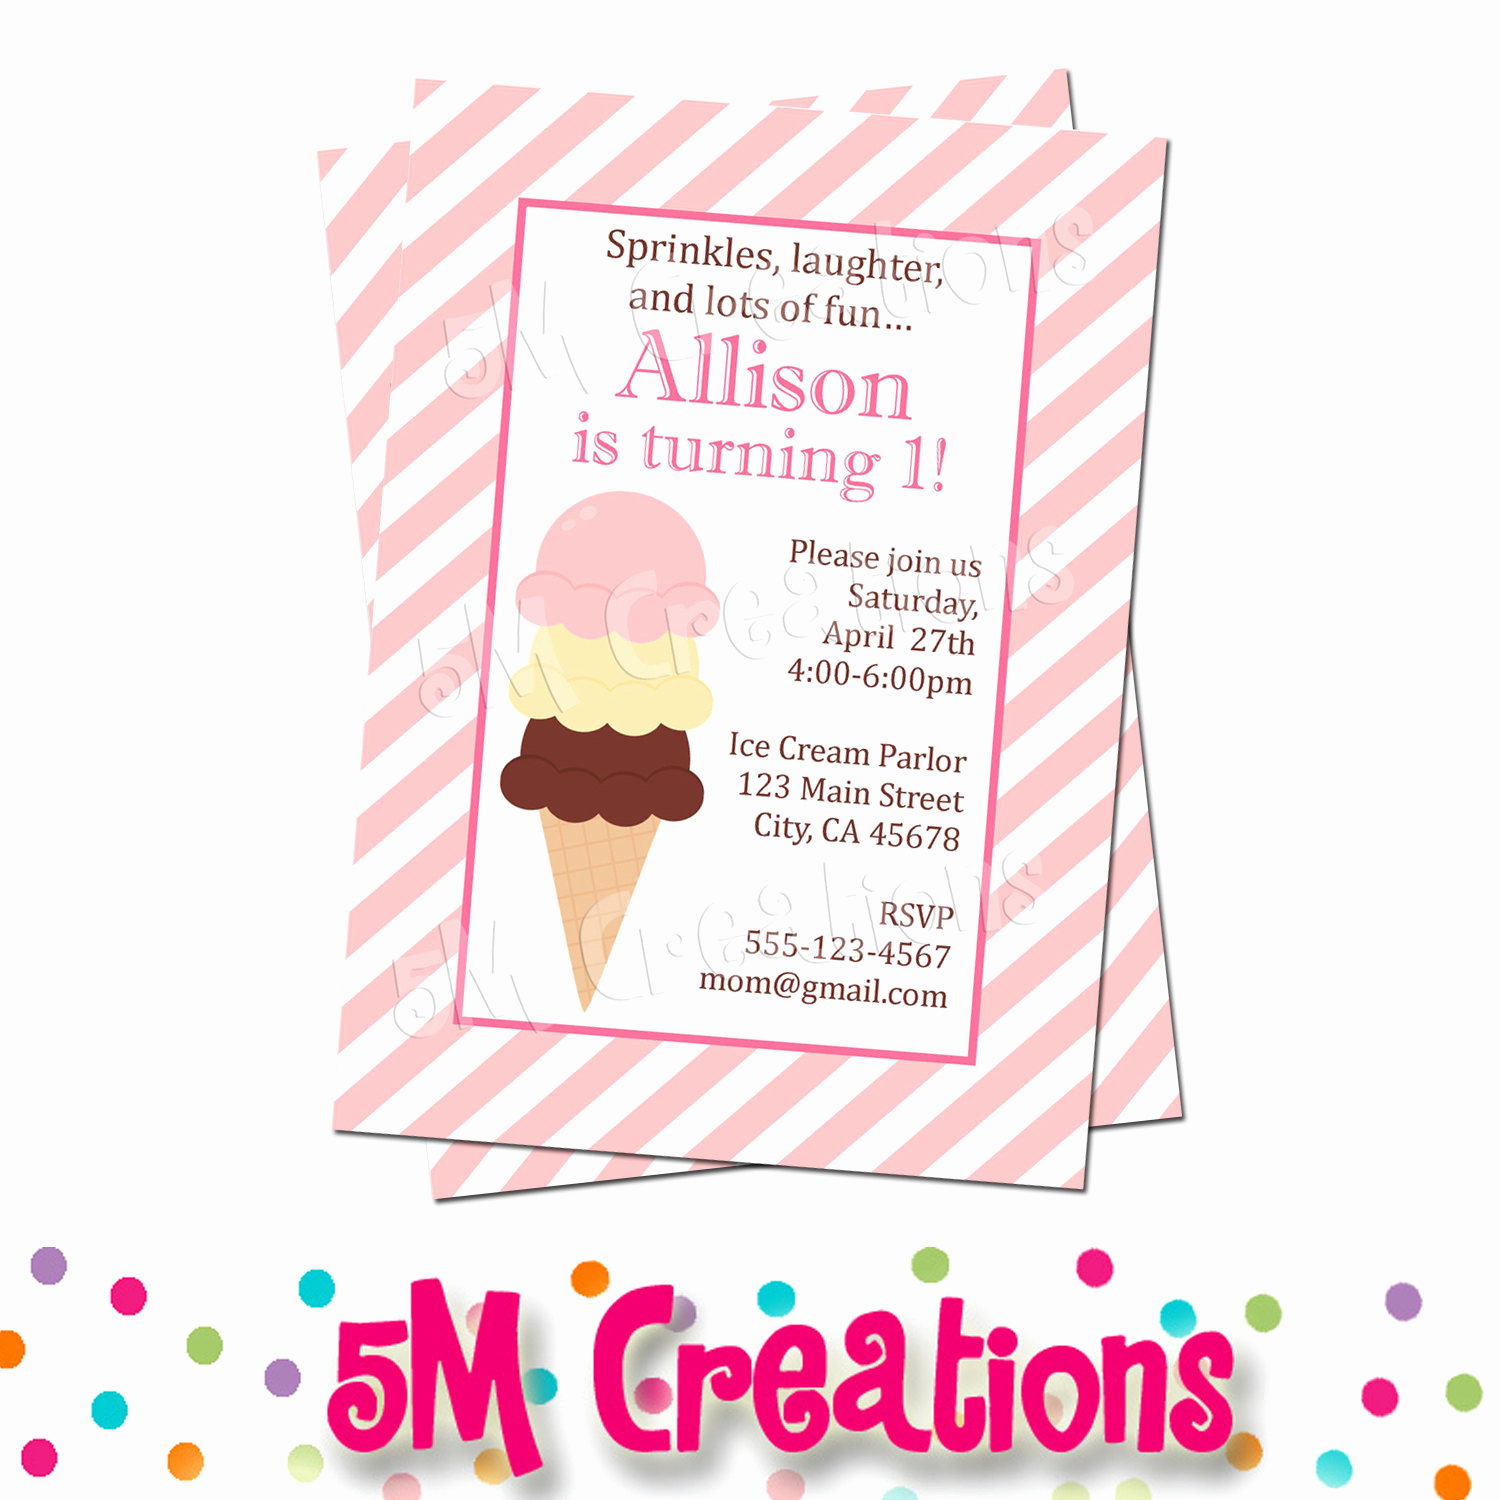 Ice Cream Party Invitation Best Of Ice Cream Party Invitation Ice Cream Birthday Party Ice